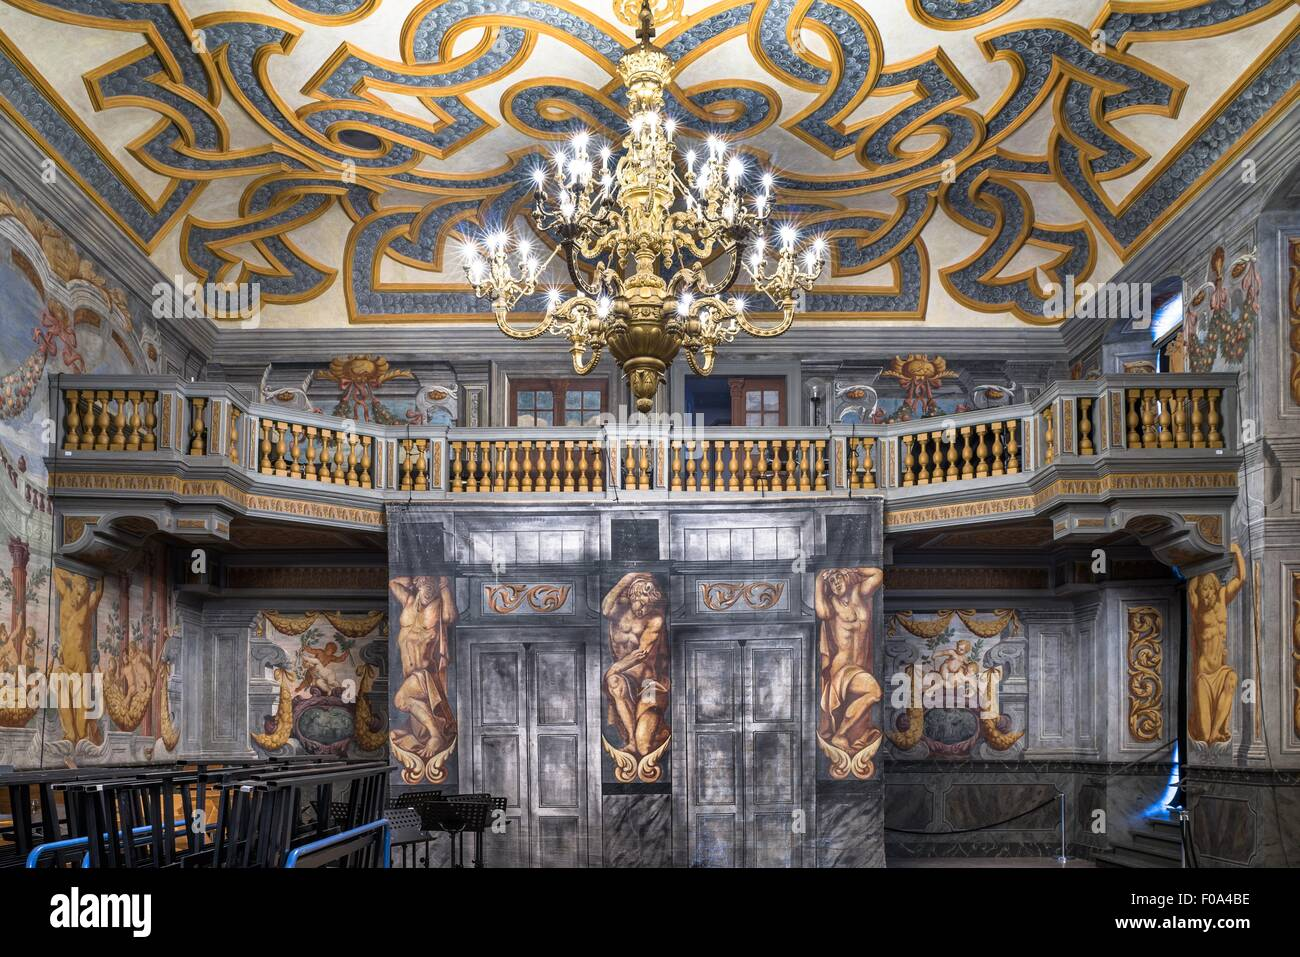 fresken von tommaso giusti am schloss herrenhausen in hannover deutschland stockfoto bild. Black Bedroom Furniture Sets. Home Design Ideas